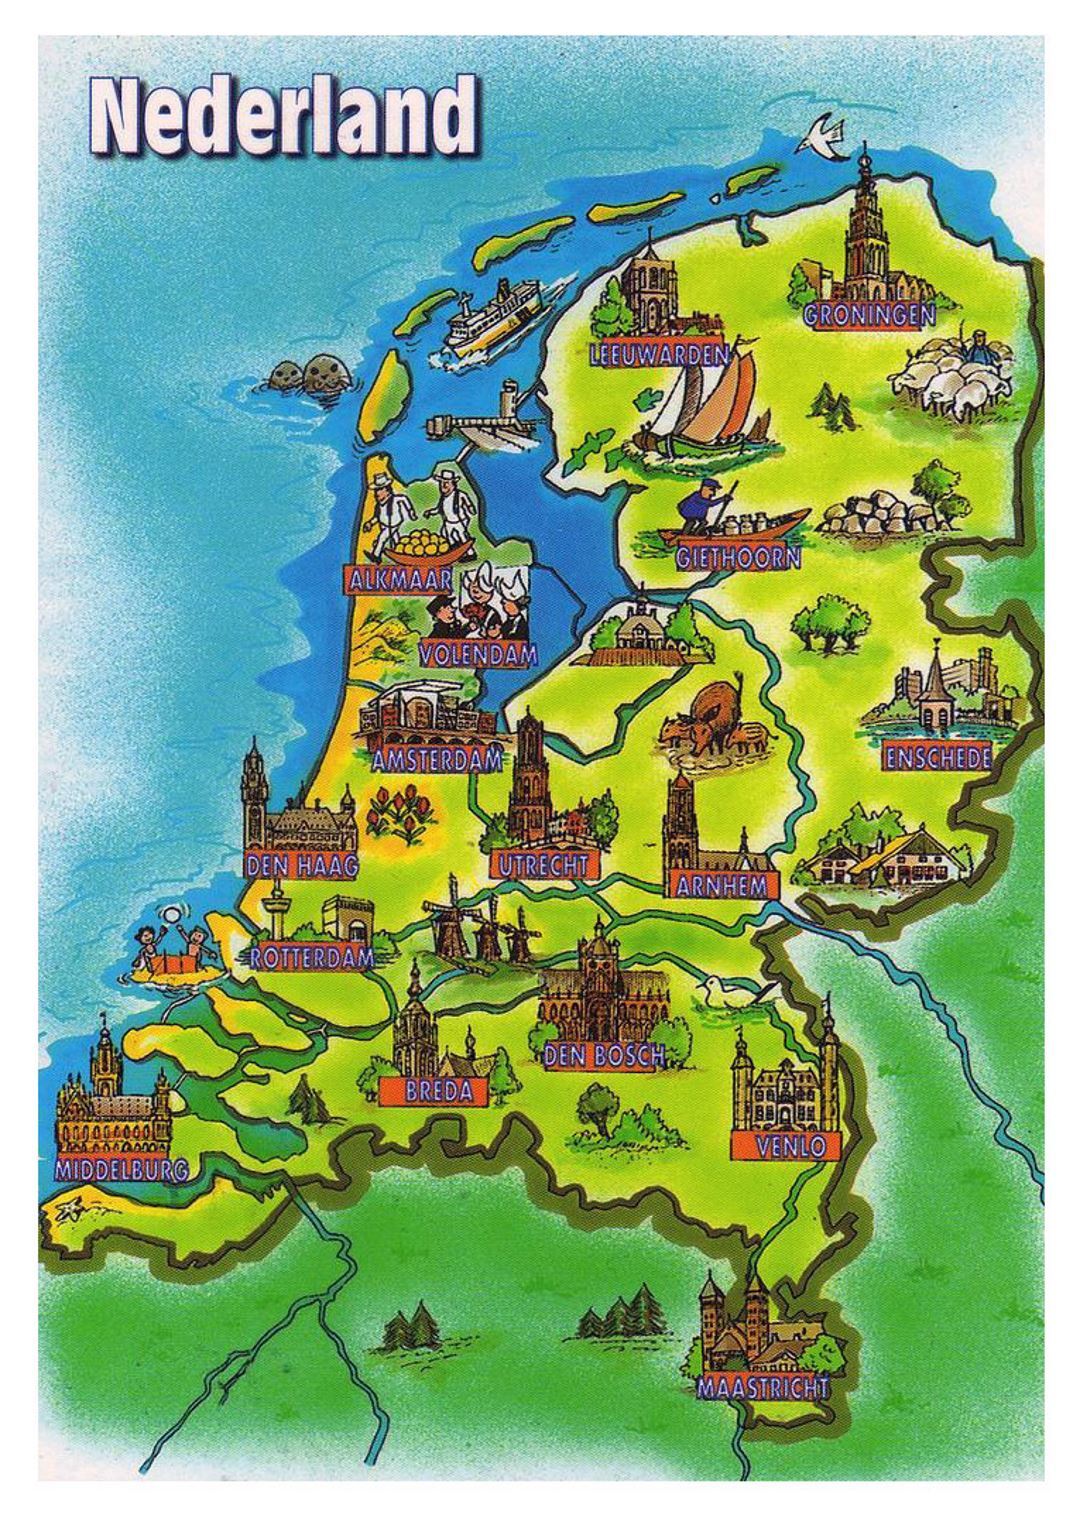 Tourist illustrated map of Netherlands  Netherlands  Europe